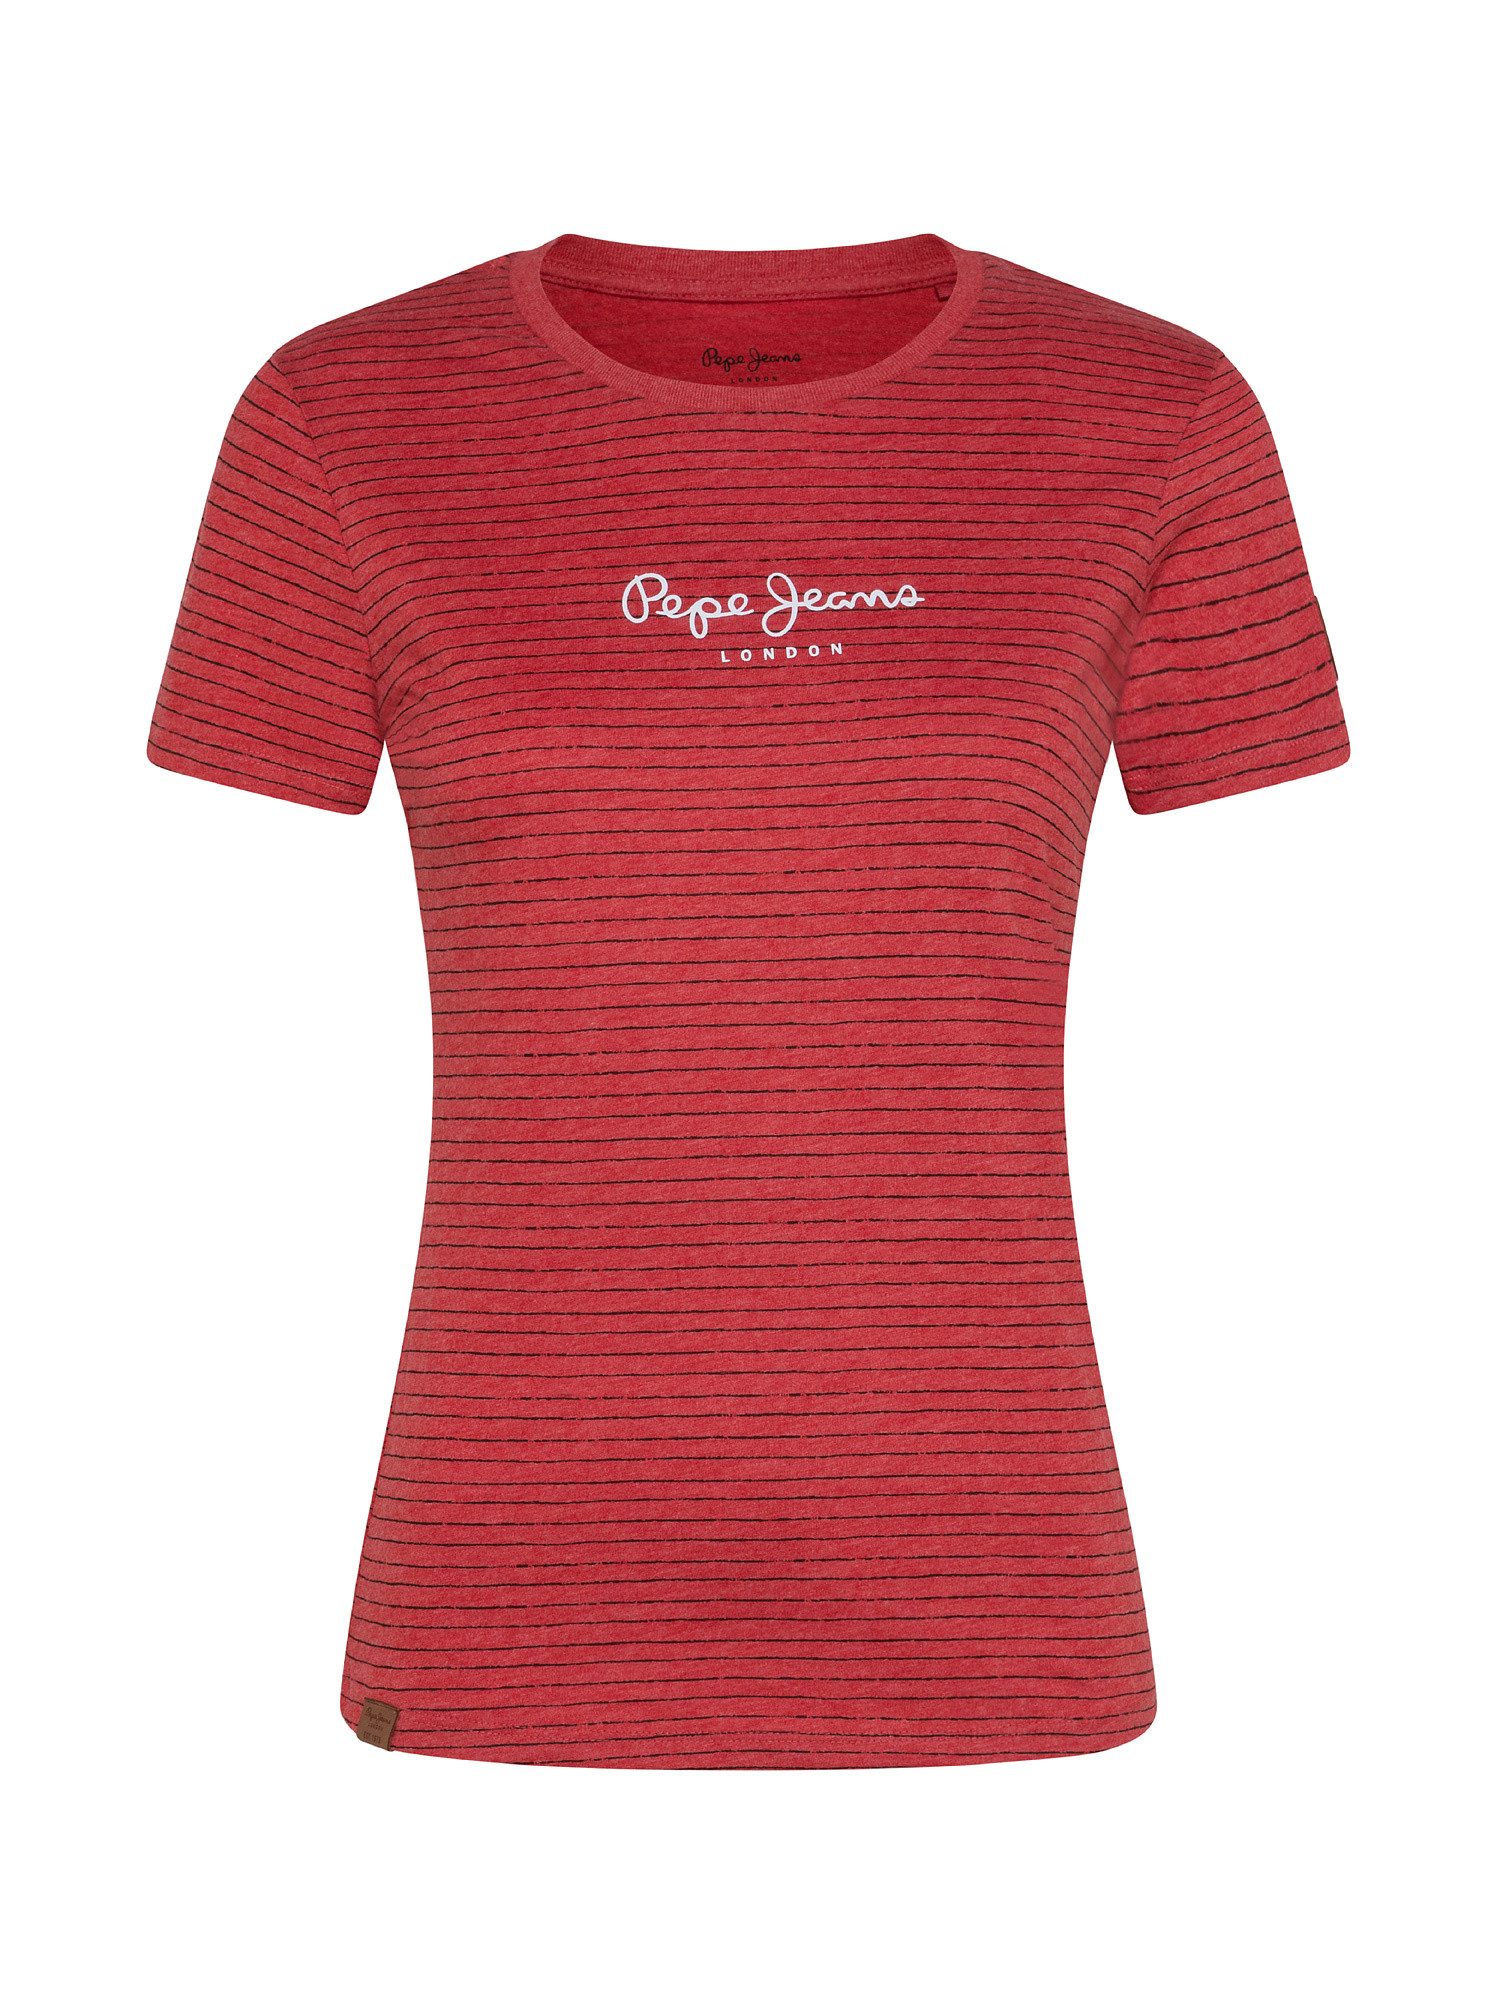 T-Shirt donna Mahsa, Rosso, large image number 0